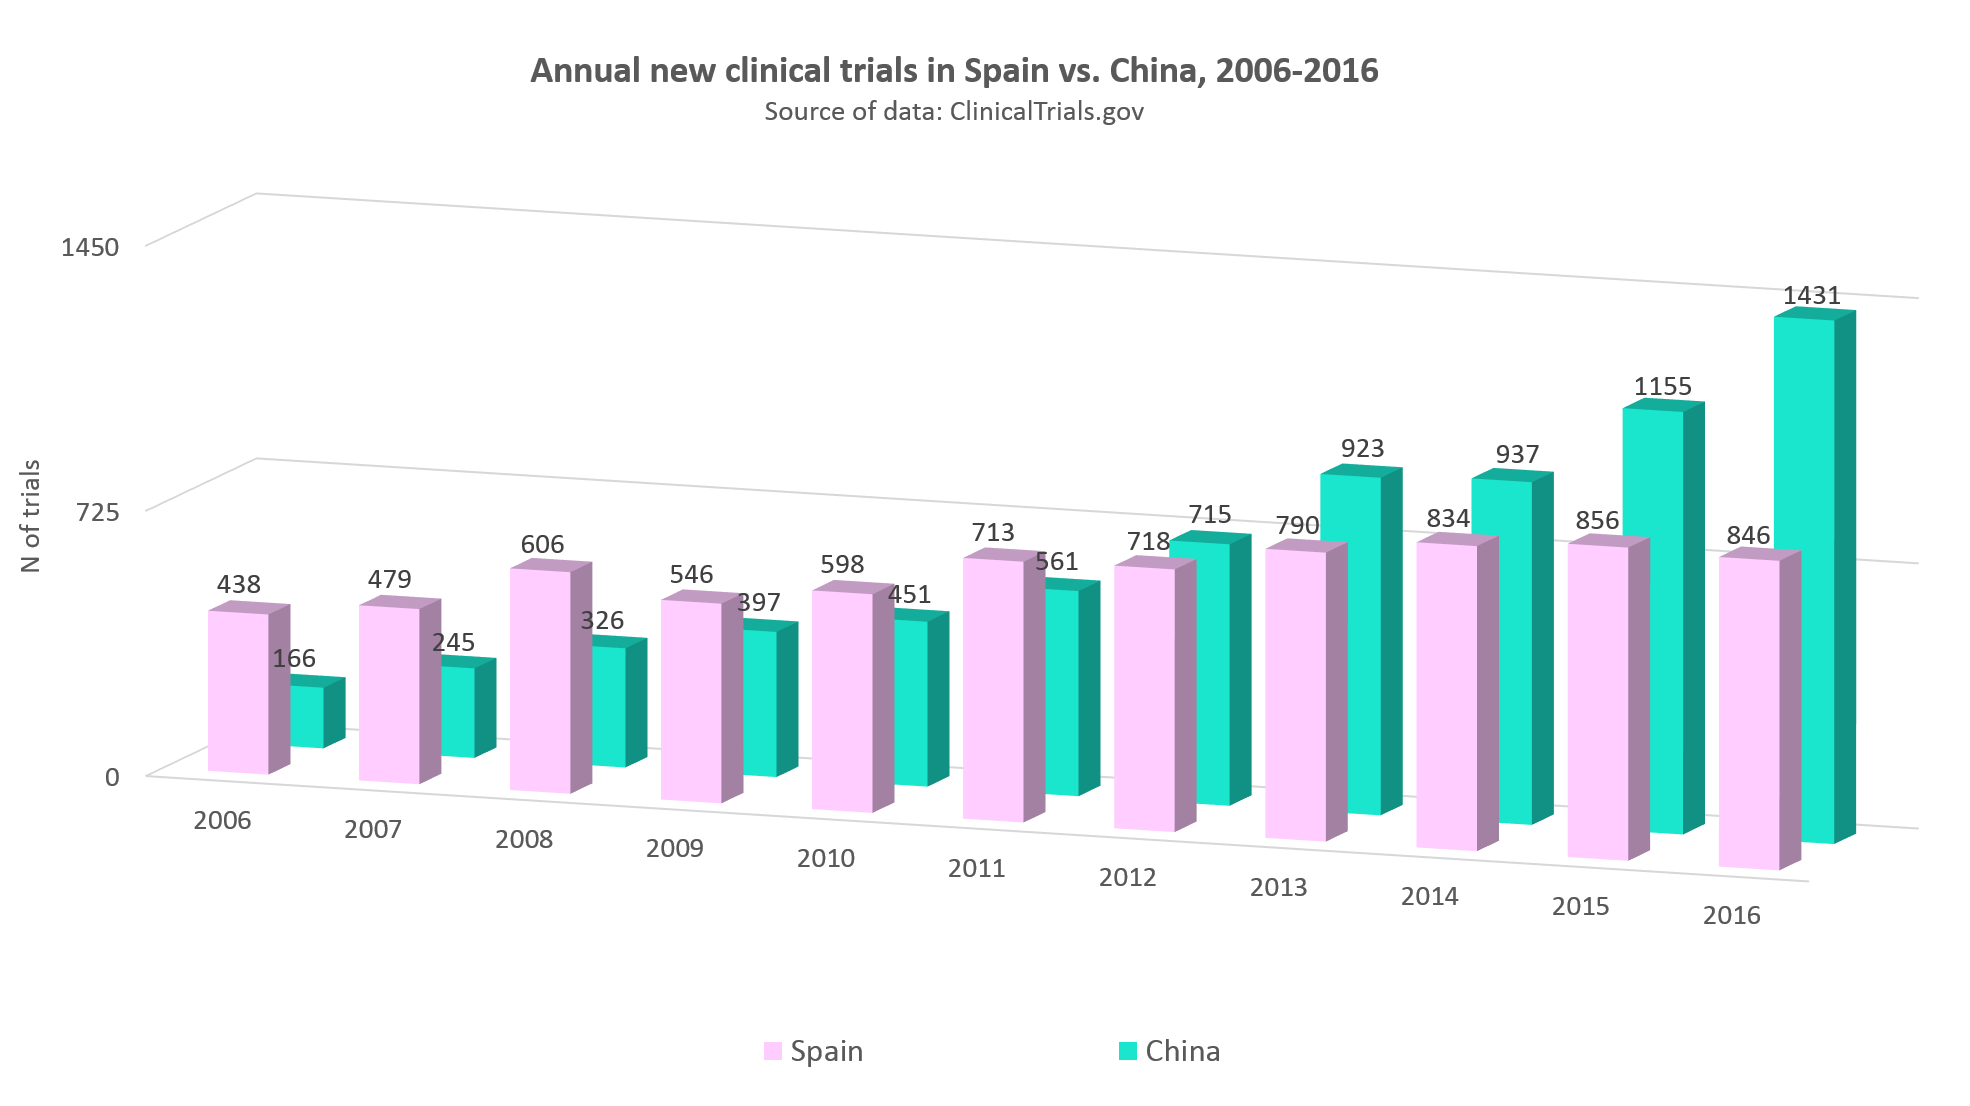 Annual statistics of clinical trials in Spain vs. China, 2006-2016